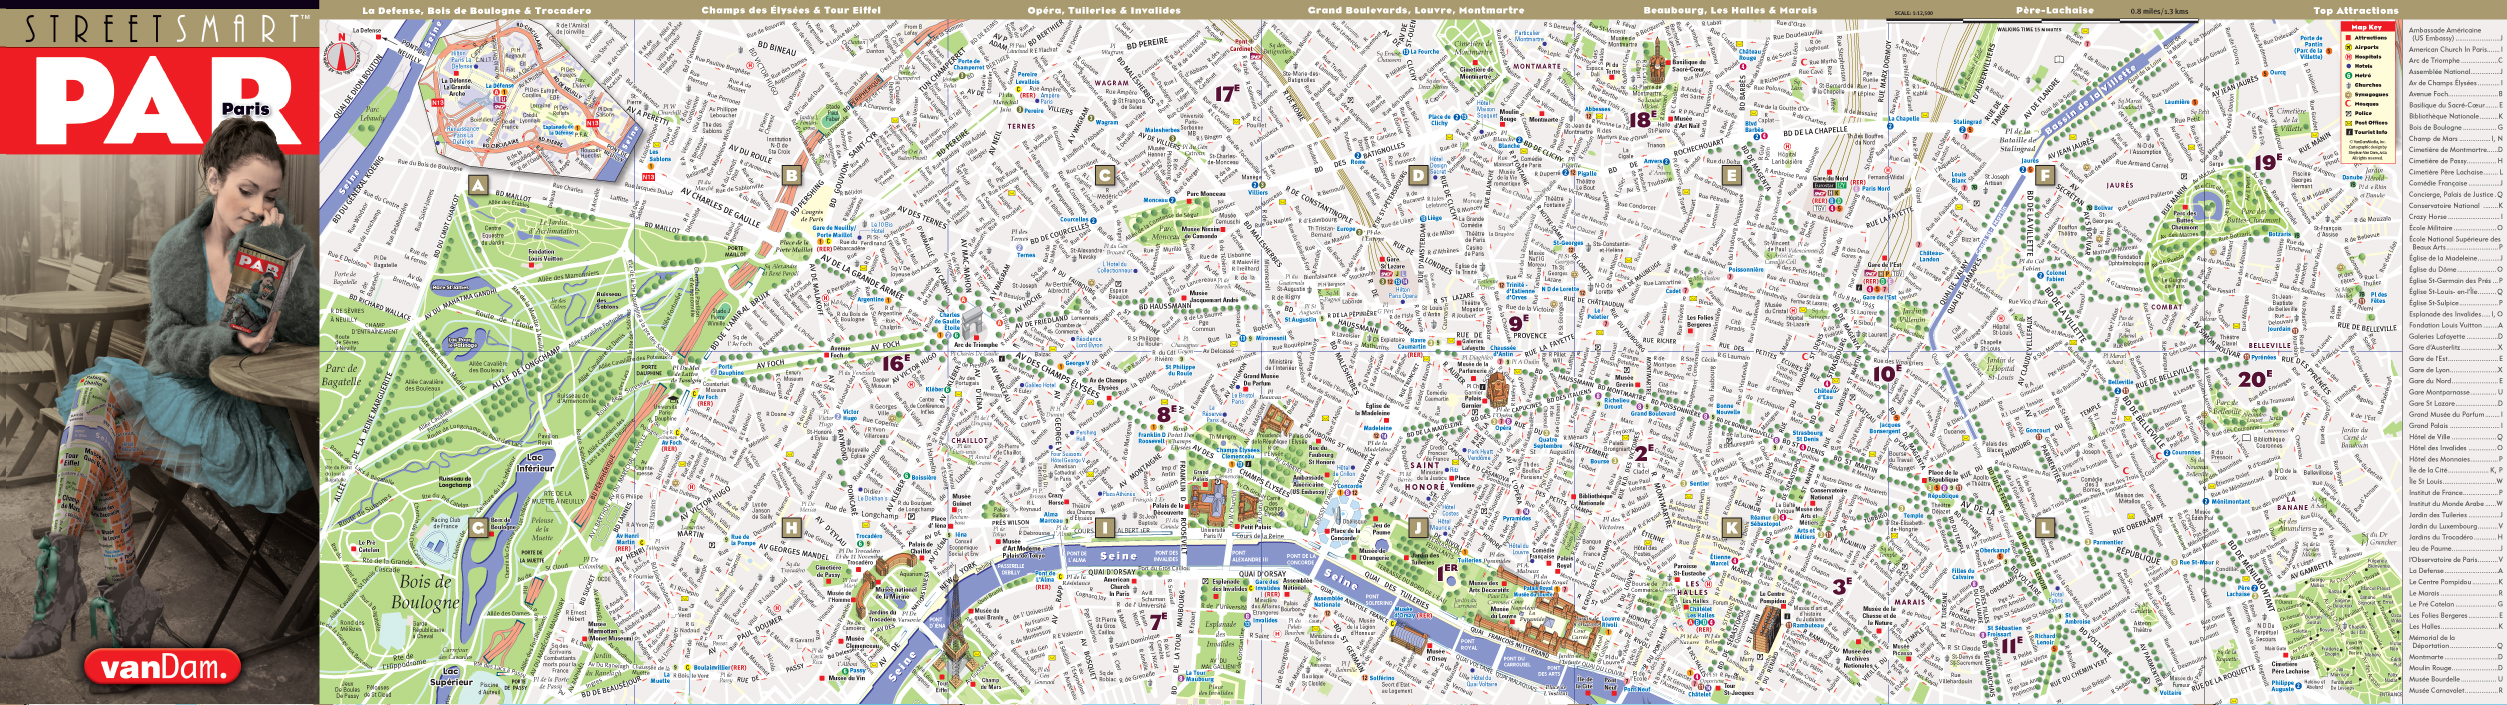 Extrem Paris Map by VanDam | Paris StreetSmart Map | City Street Maps of  LB22